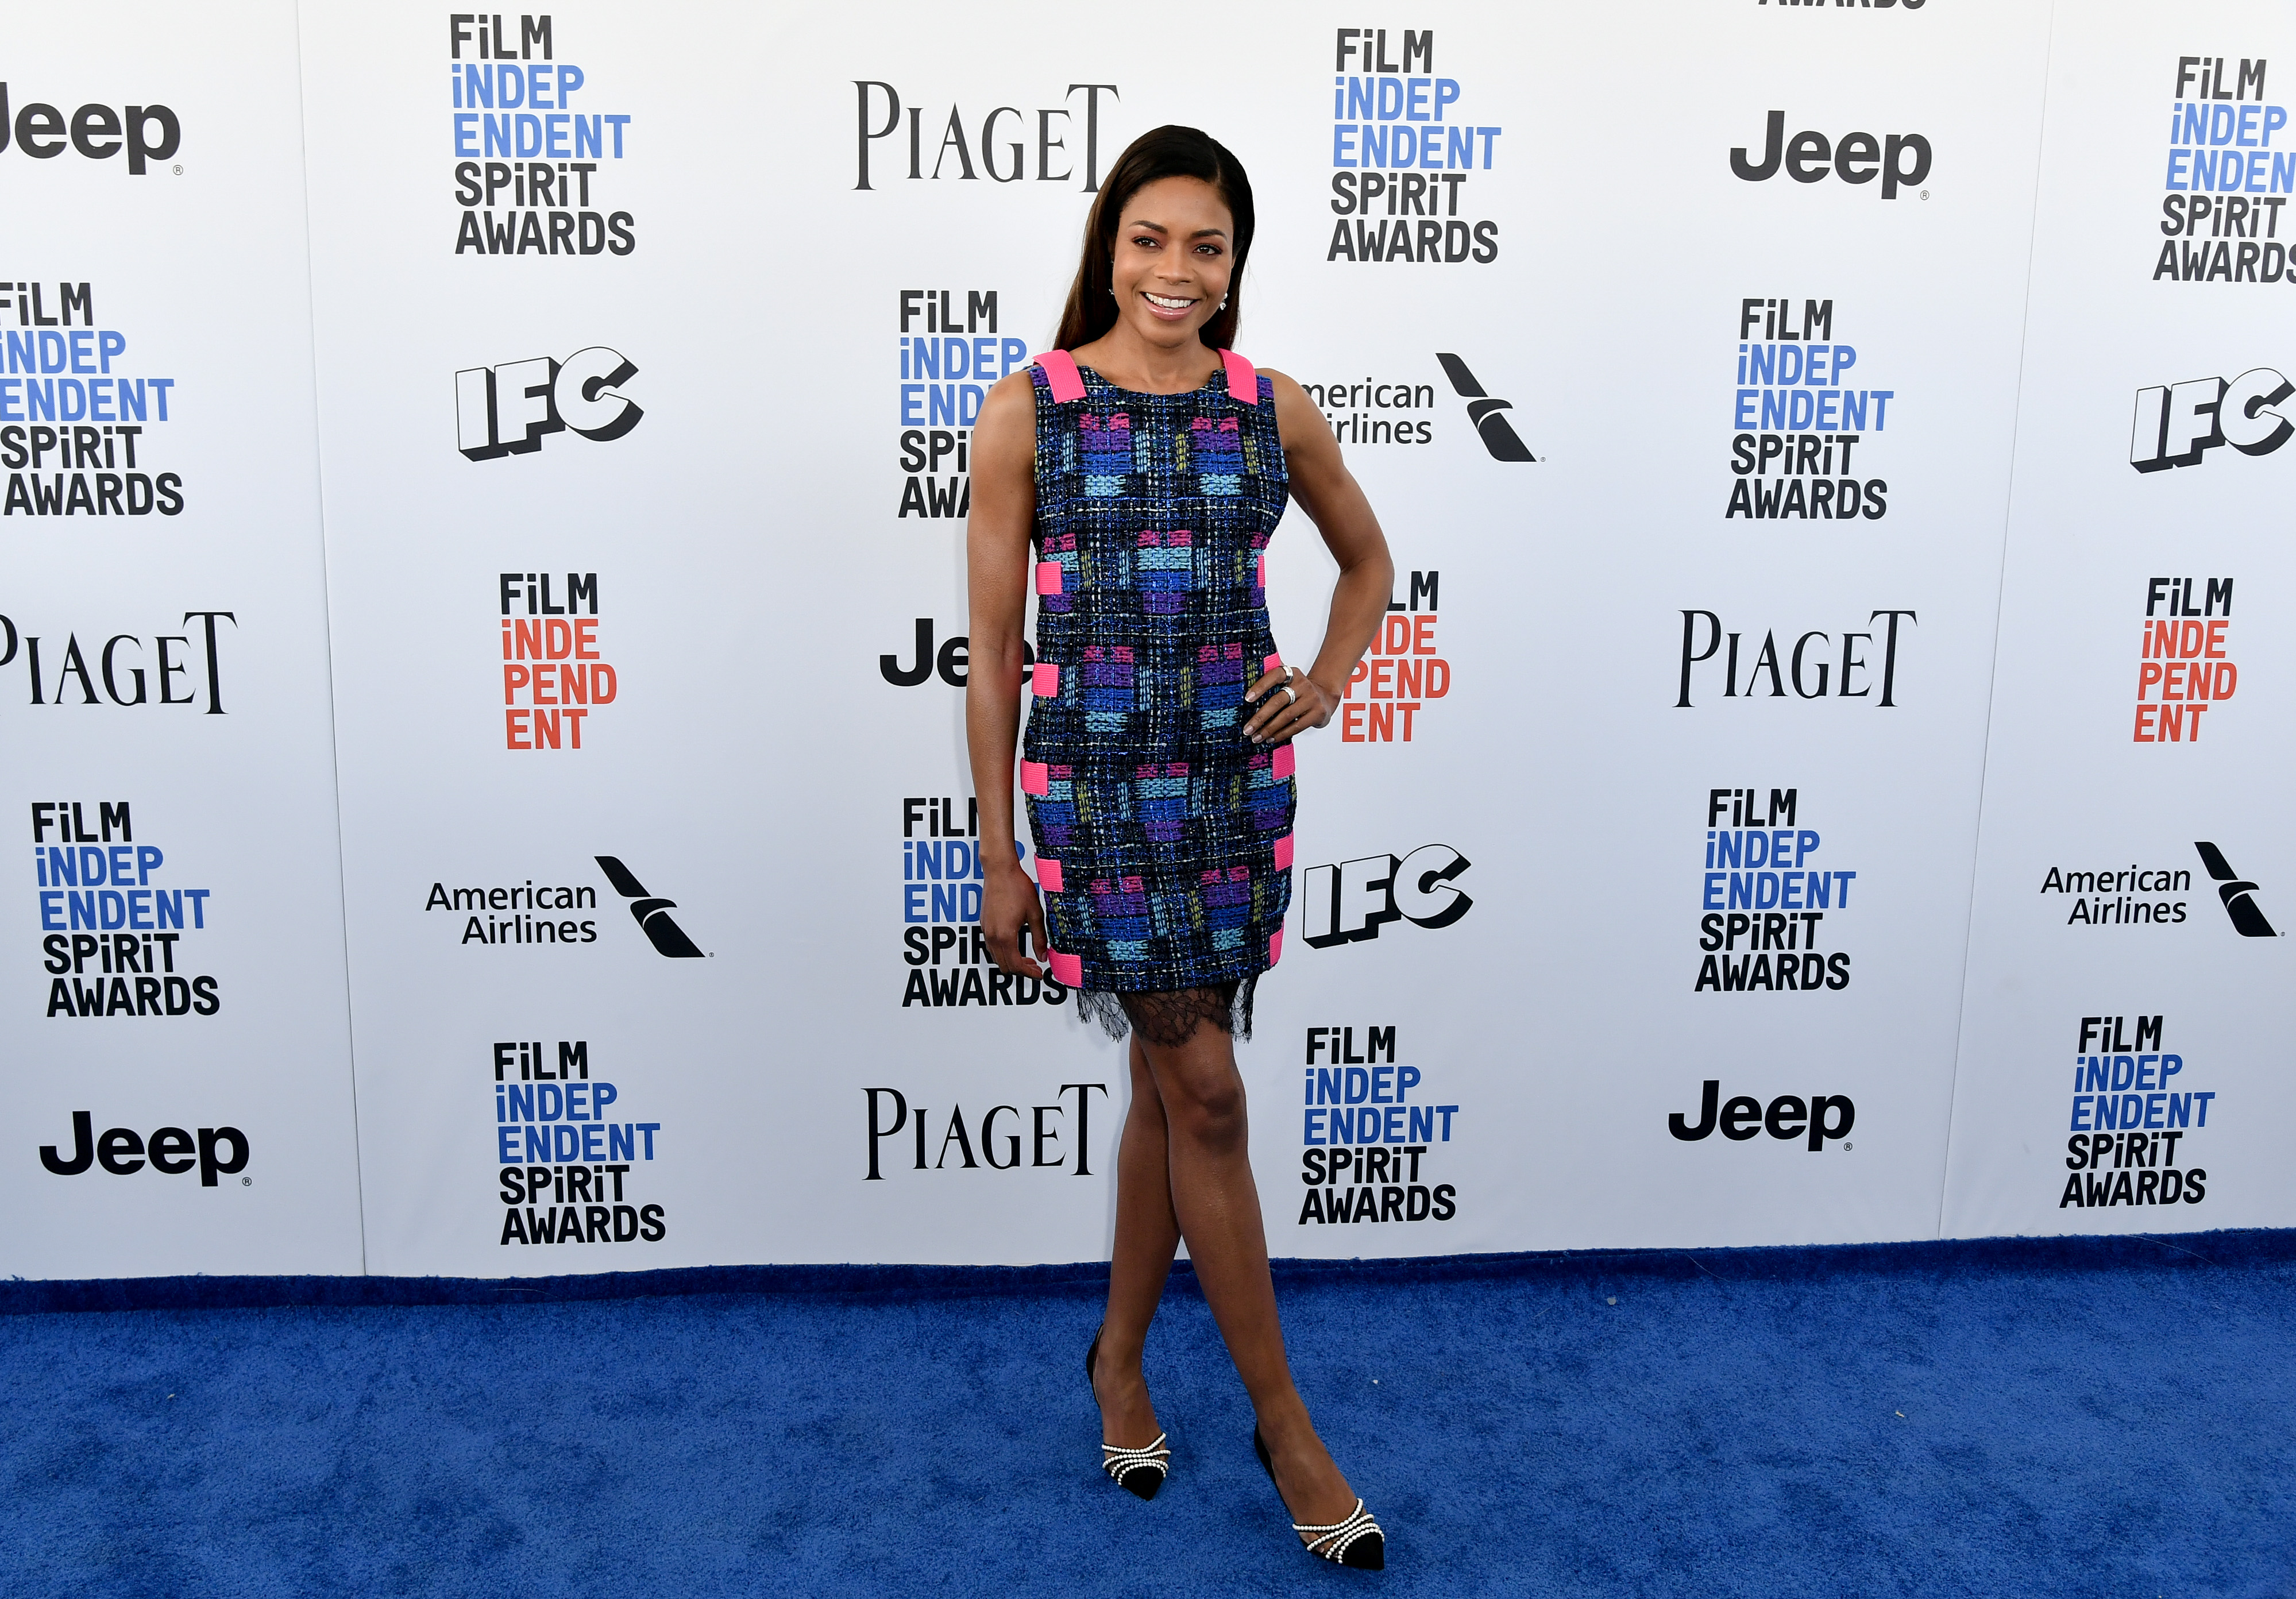 Naomie Harris in Chanel 32nd Film Independent Spirit Awards, Arrivals, Santa Monica, Los Angeles, USA - 25 Feb 2017